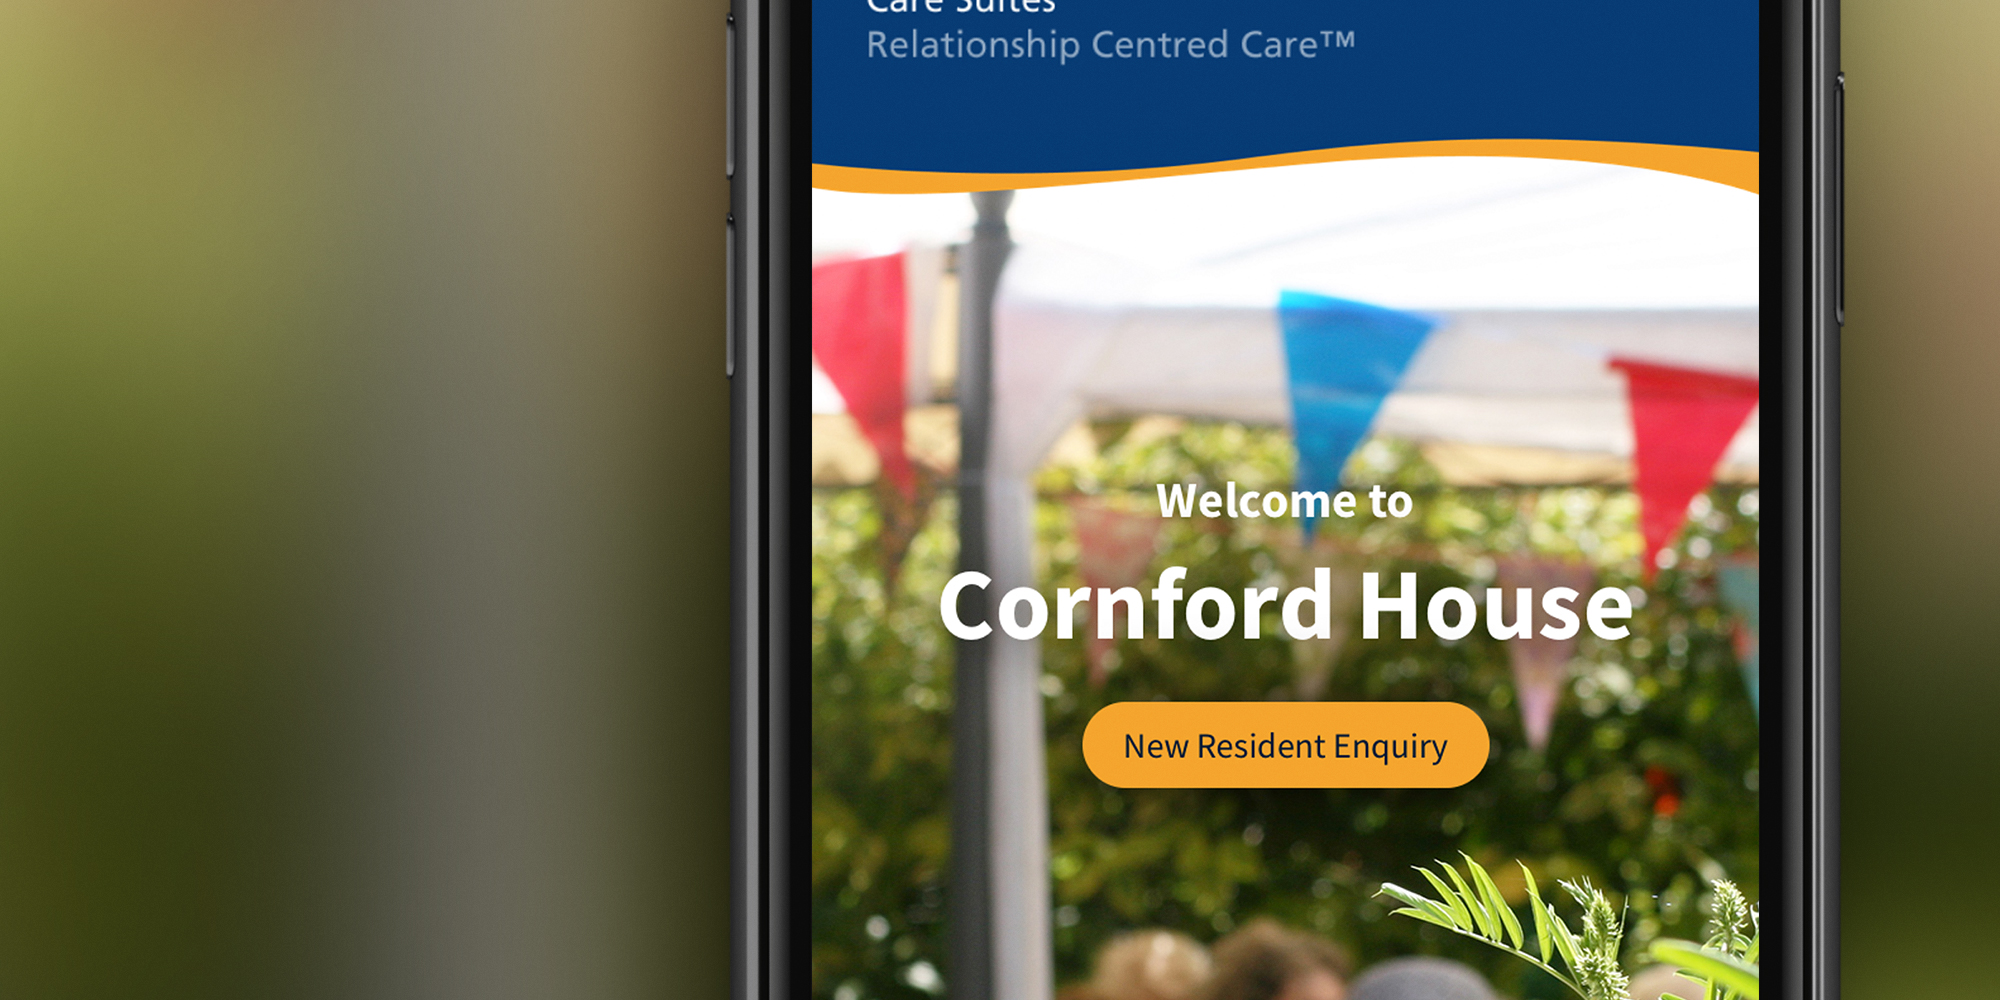 Care home website on mobile